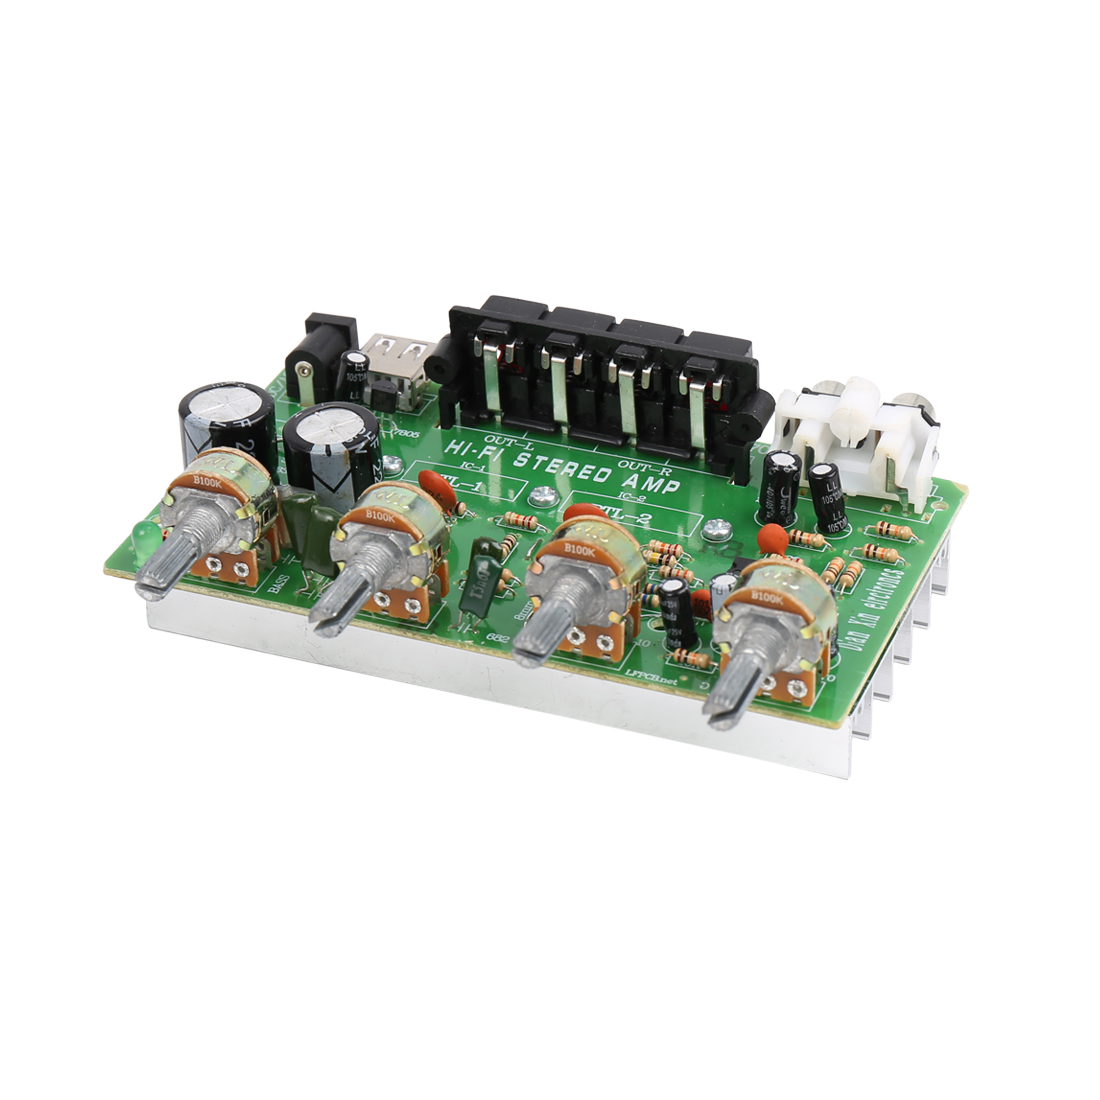 DC 12V-15V 200W LFE Hi-Fi Audio Stereo Power Amplifier Board for Car Vehicle